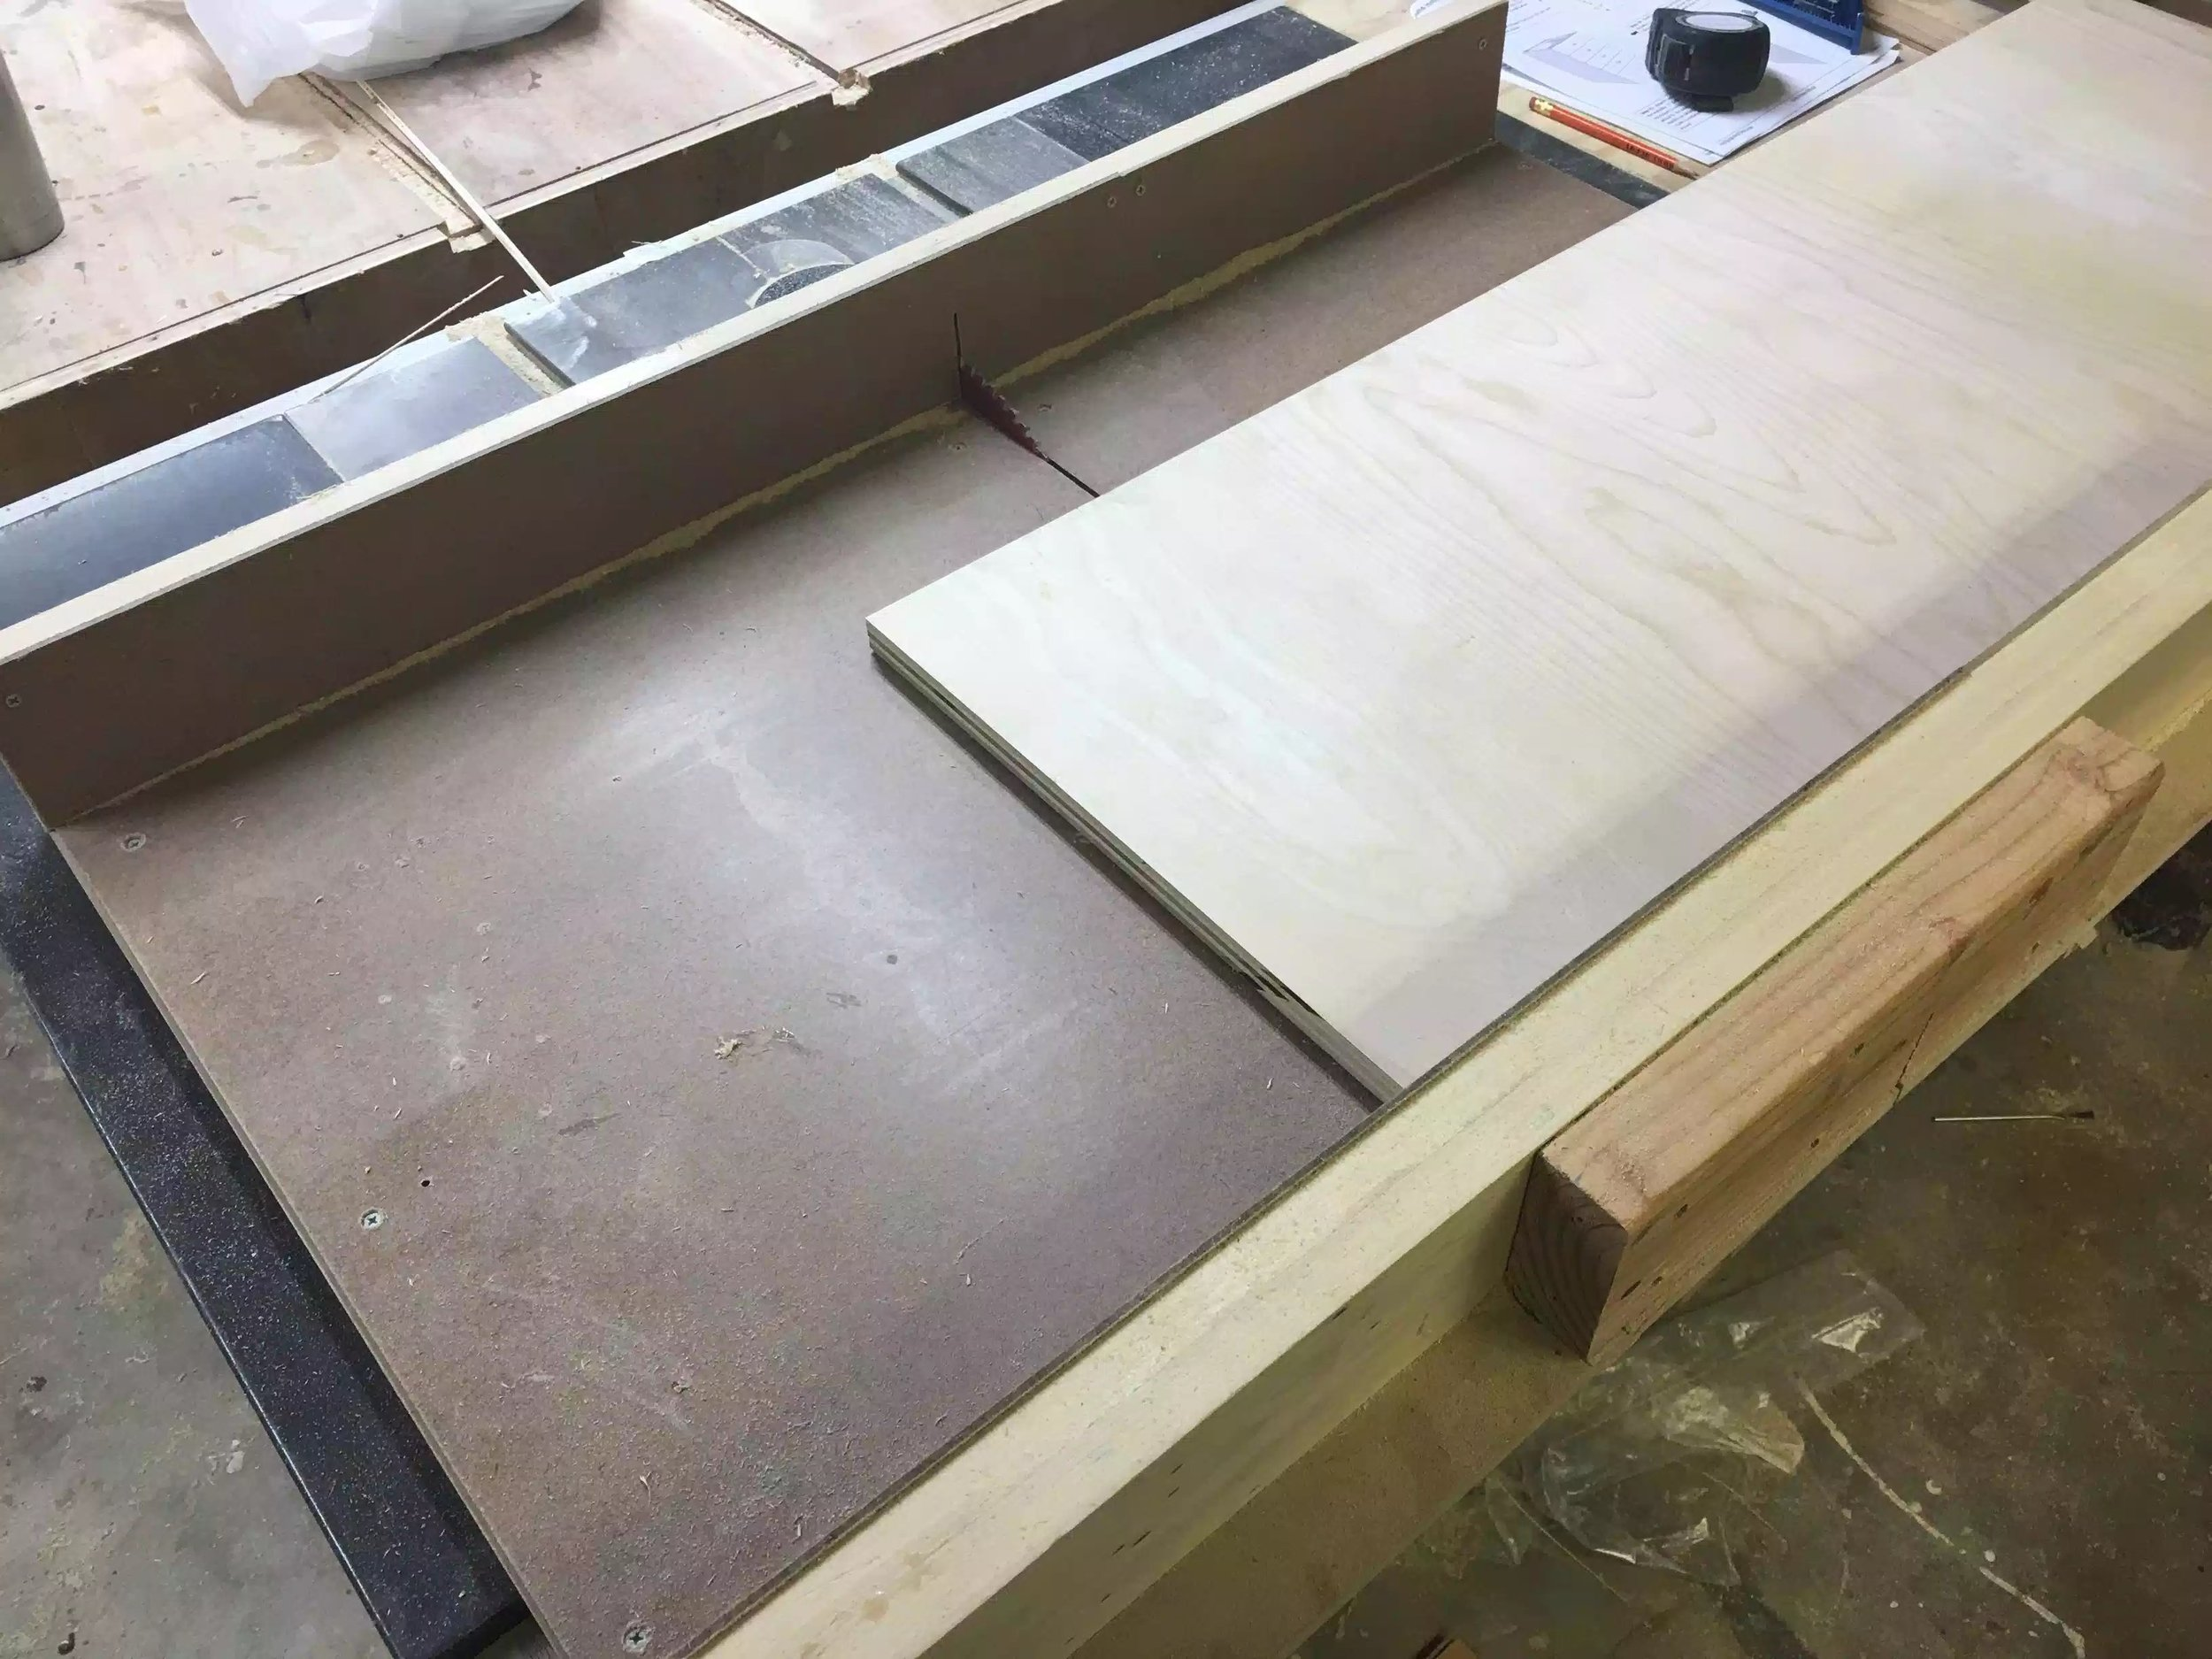 I used my crosscut sled on my table-saw to cut all the false fronts to final size.